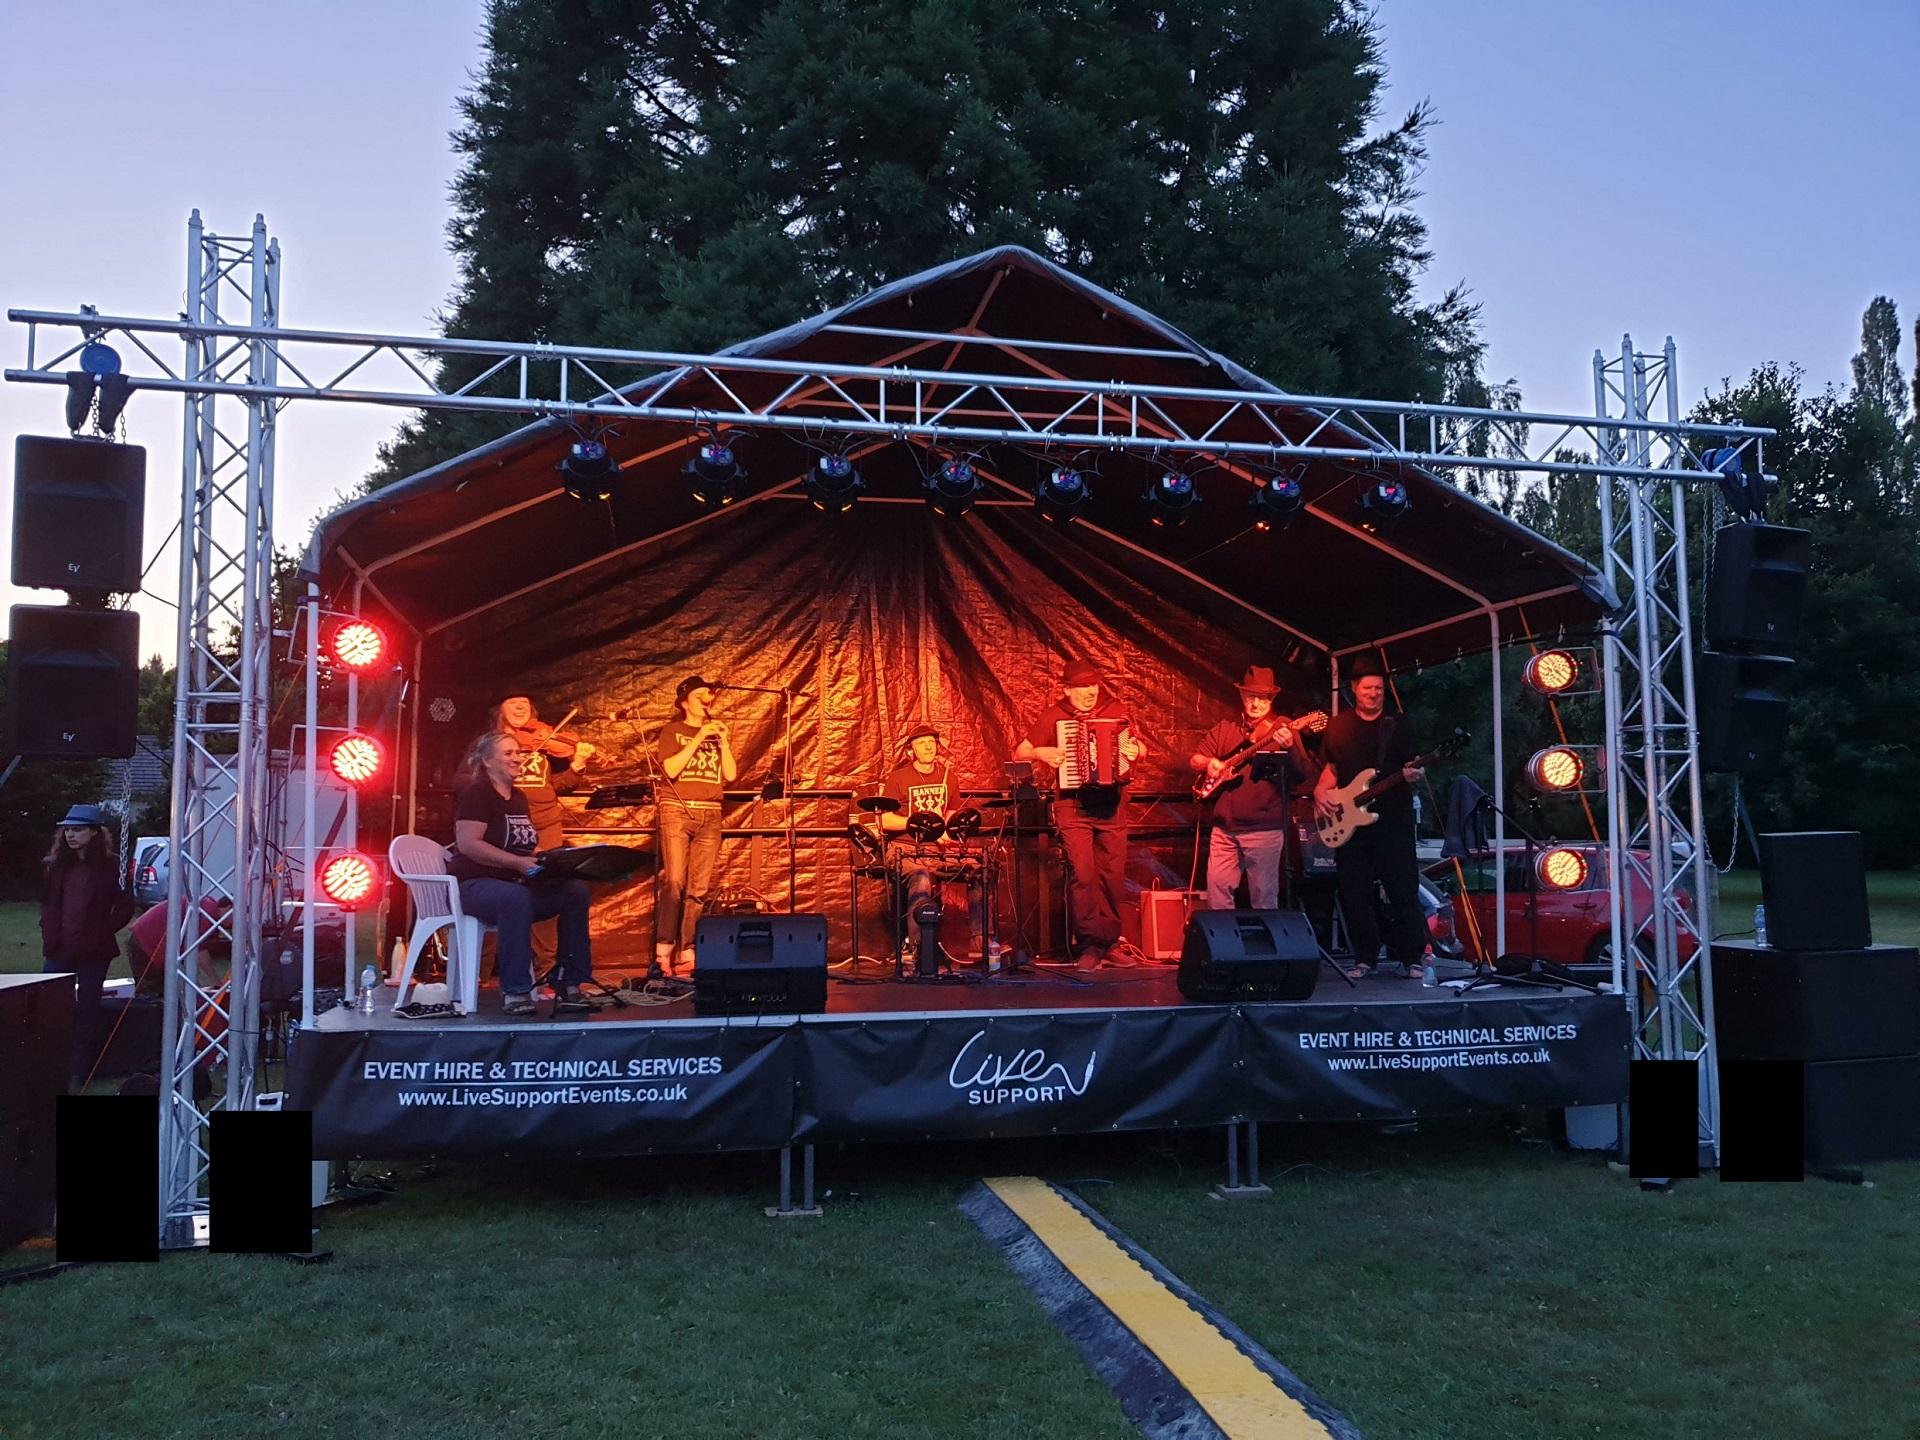 Outdoor Stage Hire and Rental for Local Festivals Events Concerts Christmas Light Switch On Cheap Exeter Southampton